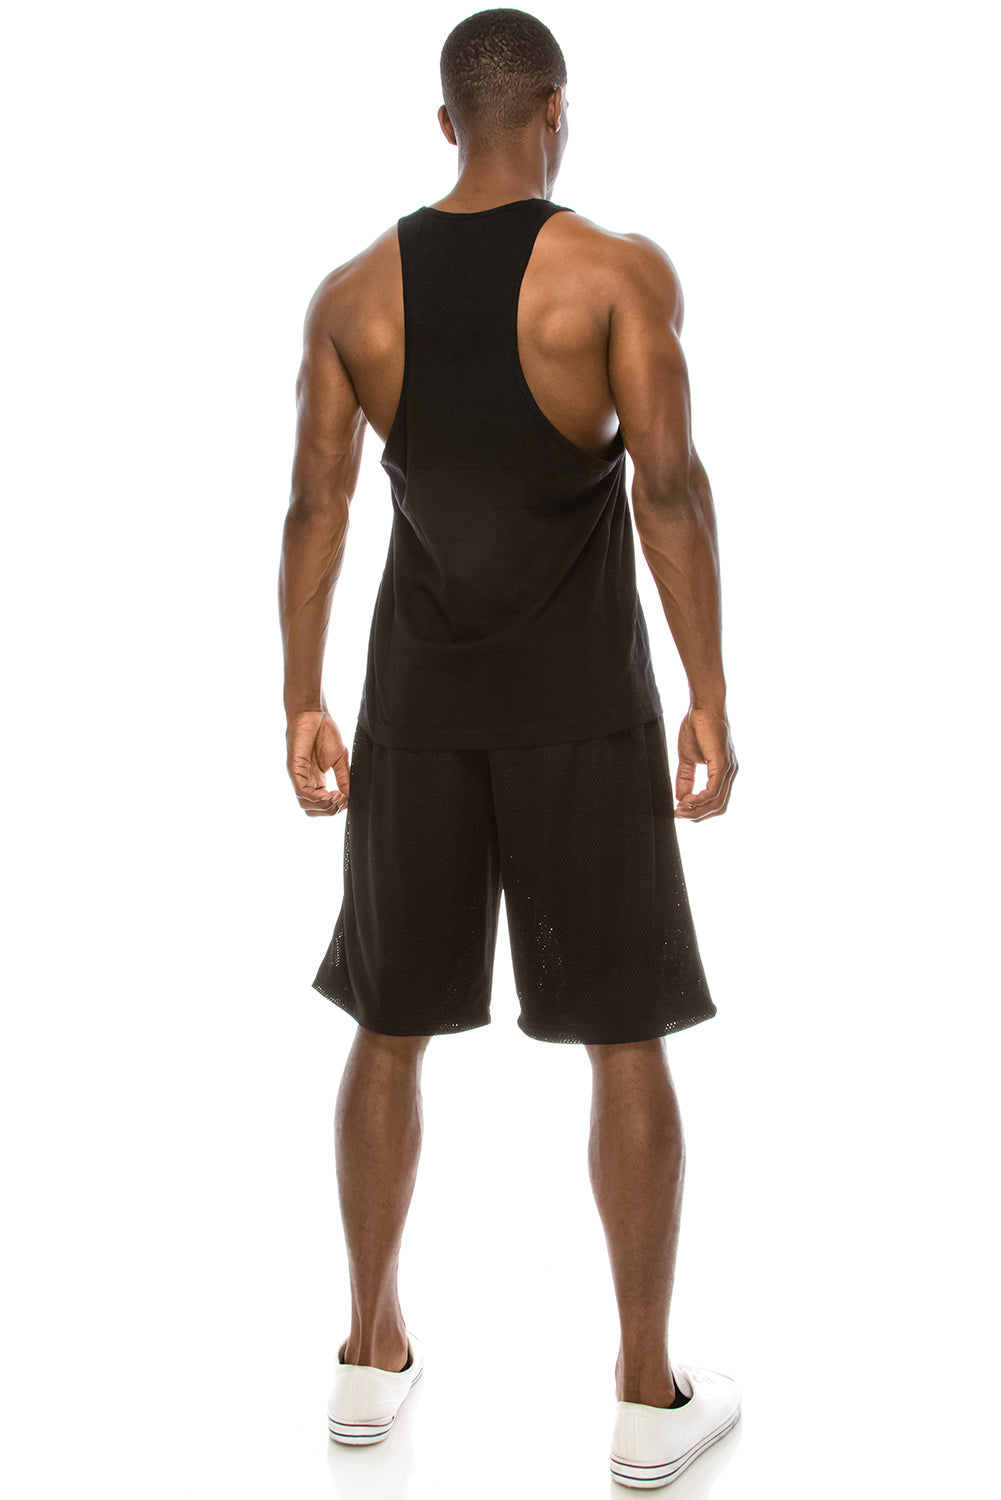 Unisex Workout Deep Cut Muscle Tank Top (Black)